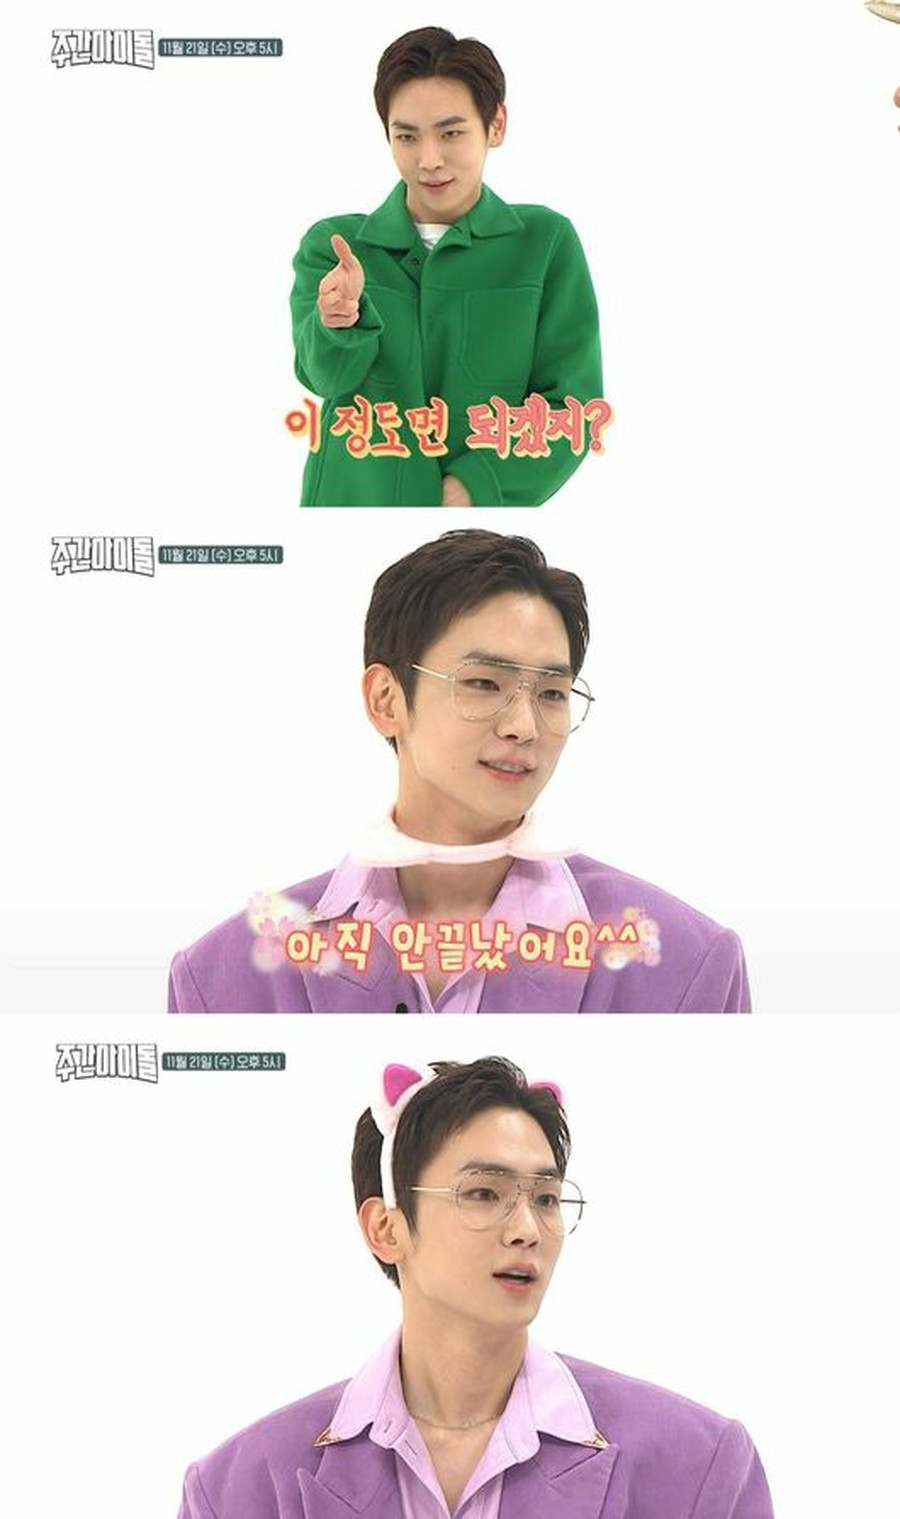 SHINee Key, appeared on variety show